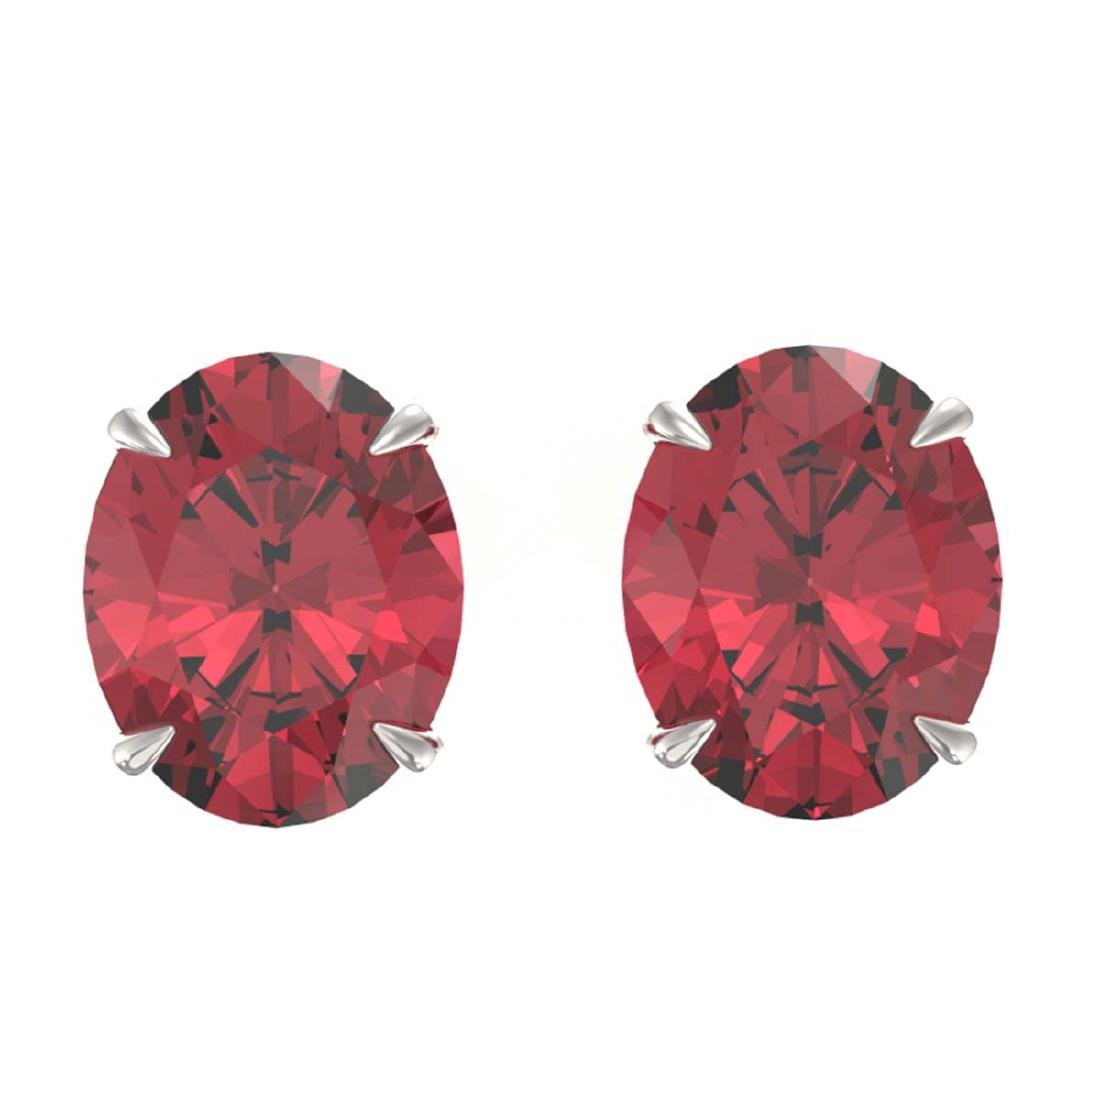 5.50 CTW Pink Tourmaline Solitaire Stud Earrings 18K